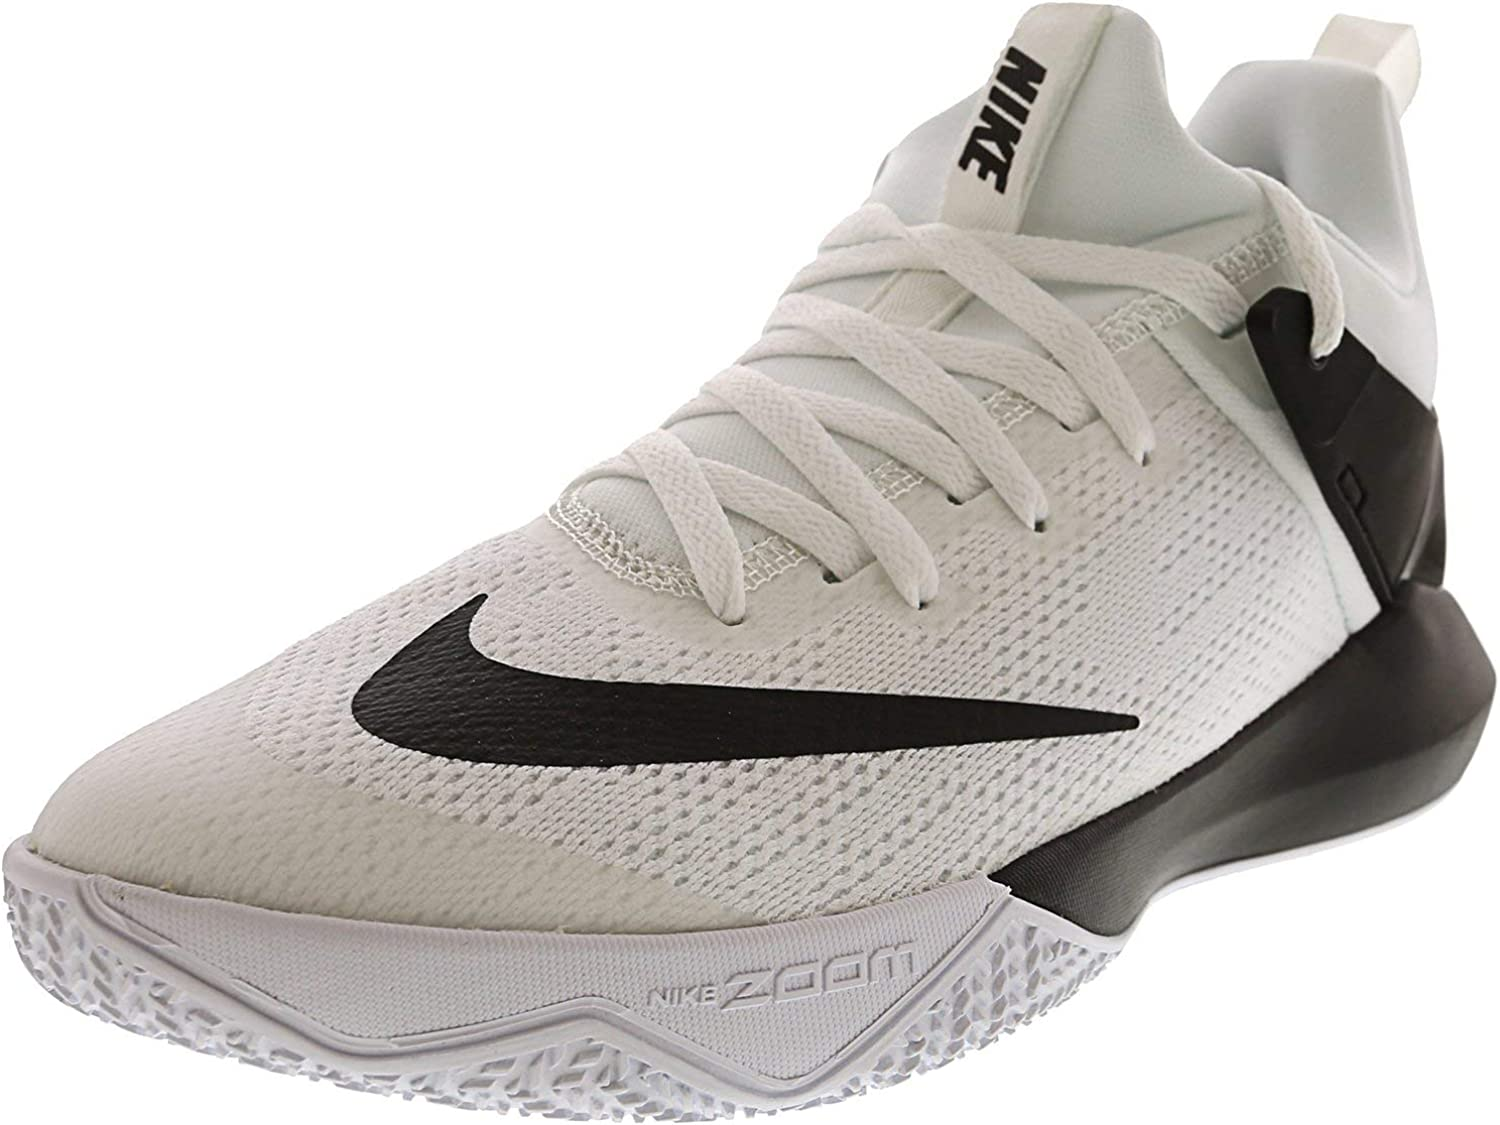 Nike Zoom Swift Mens Basketball Trainers 897653 Sneakers Shoes ホワイト/ブラック 8.5 M US